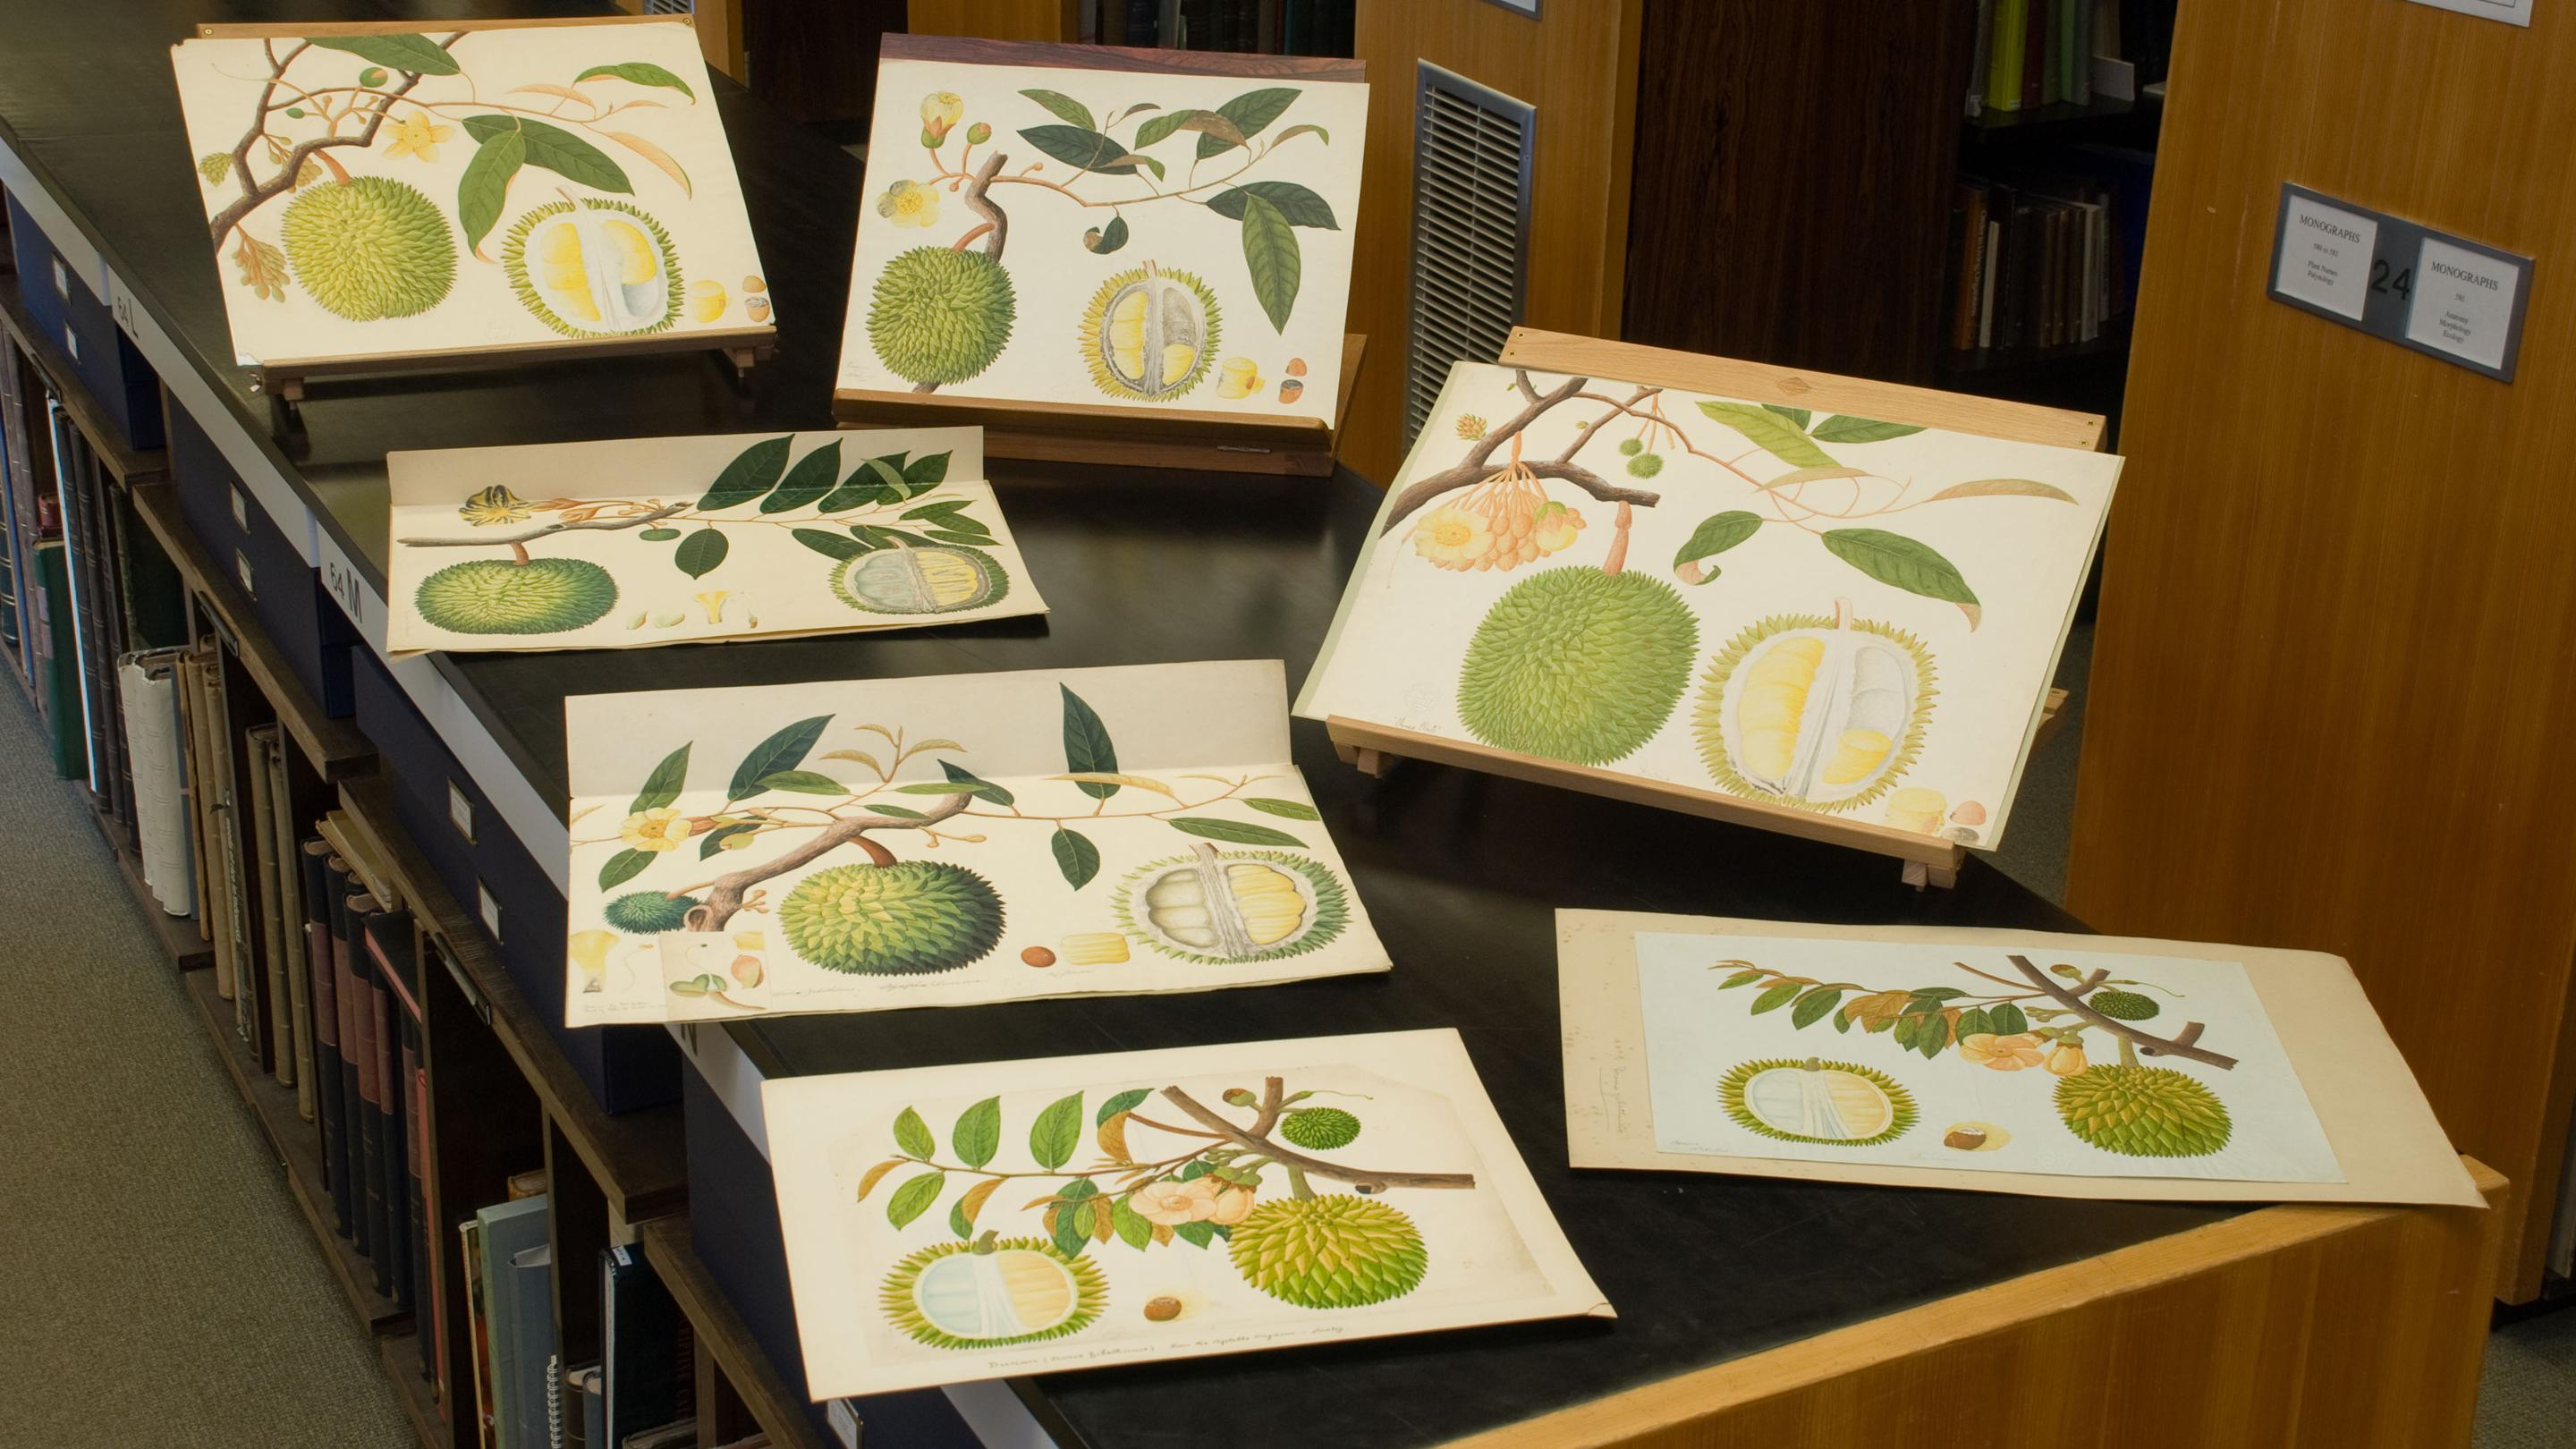 Charmant Botanical Illustrations On Show In The Library